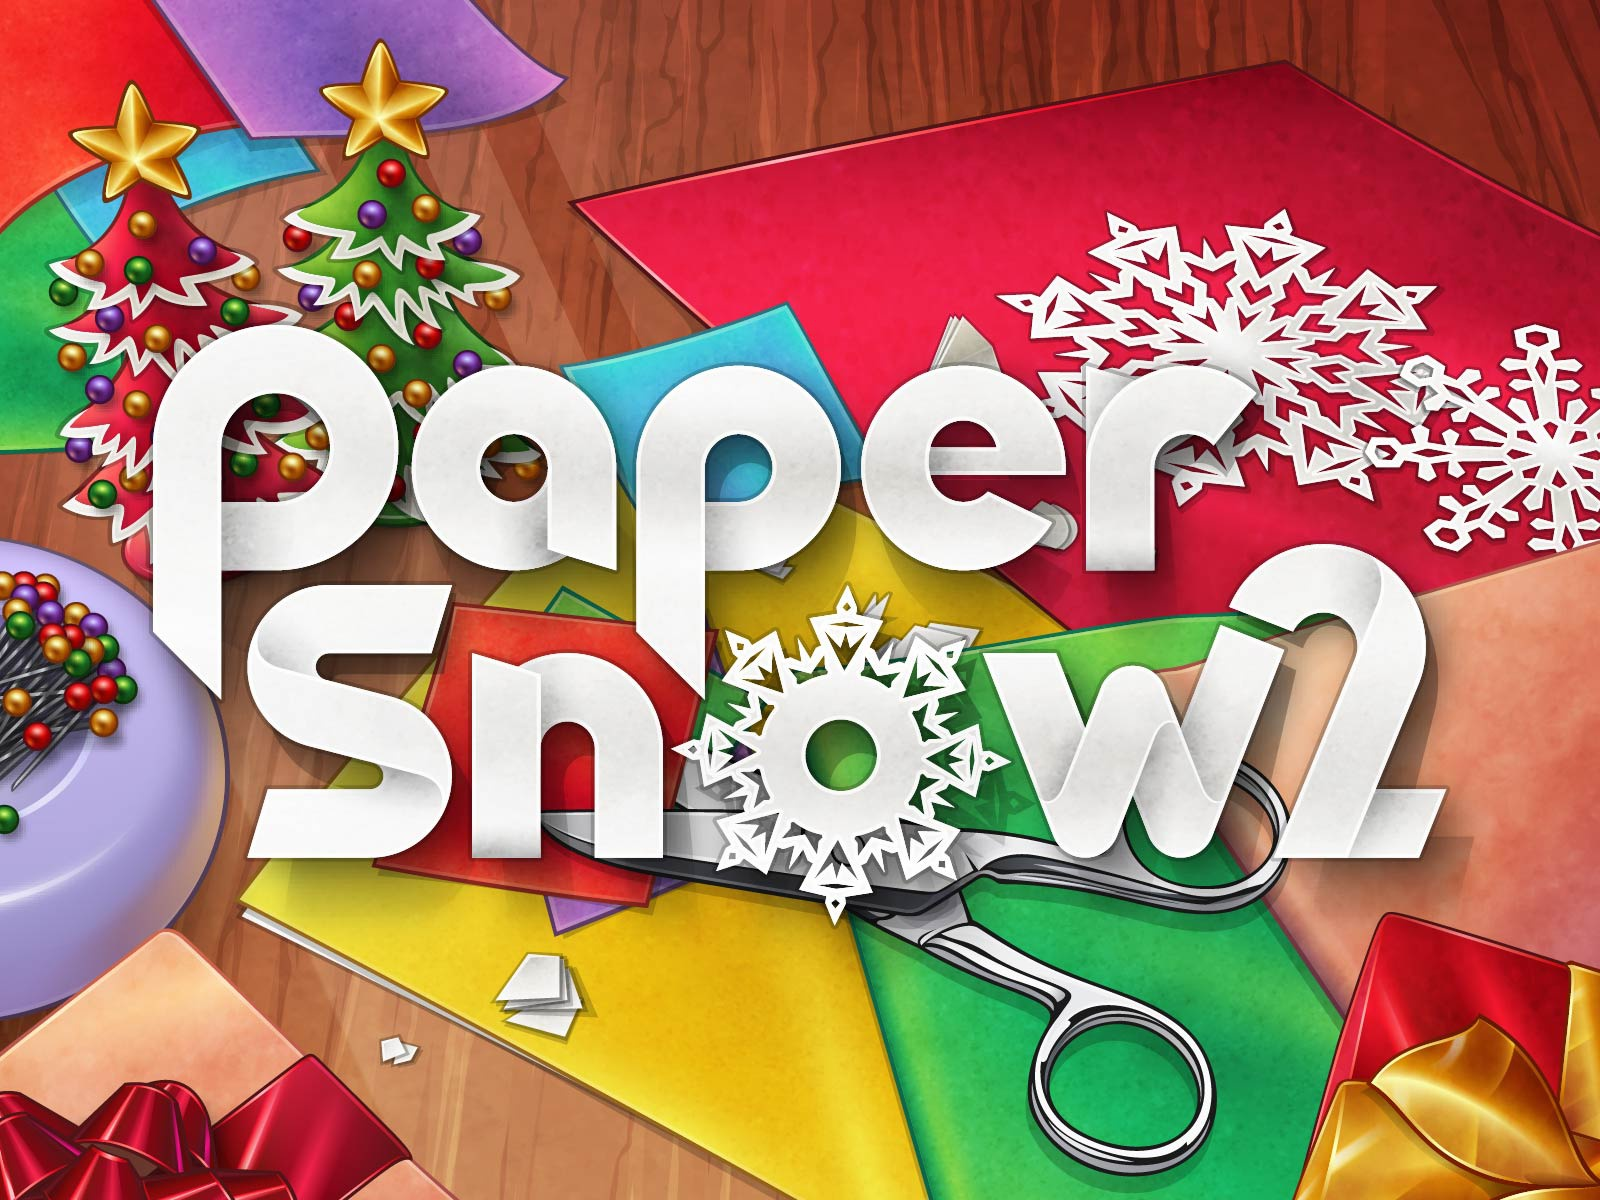 Papersnow2hd